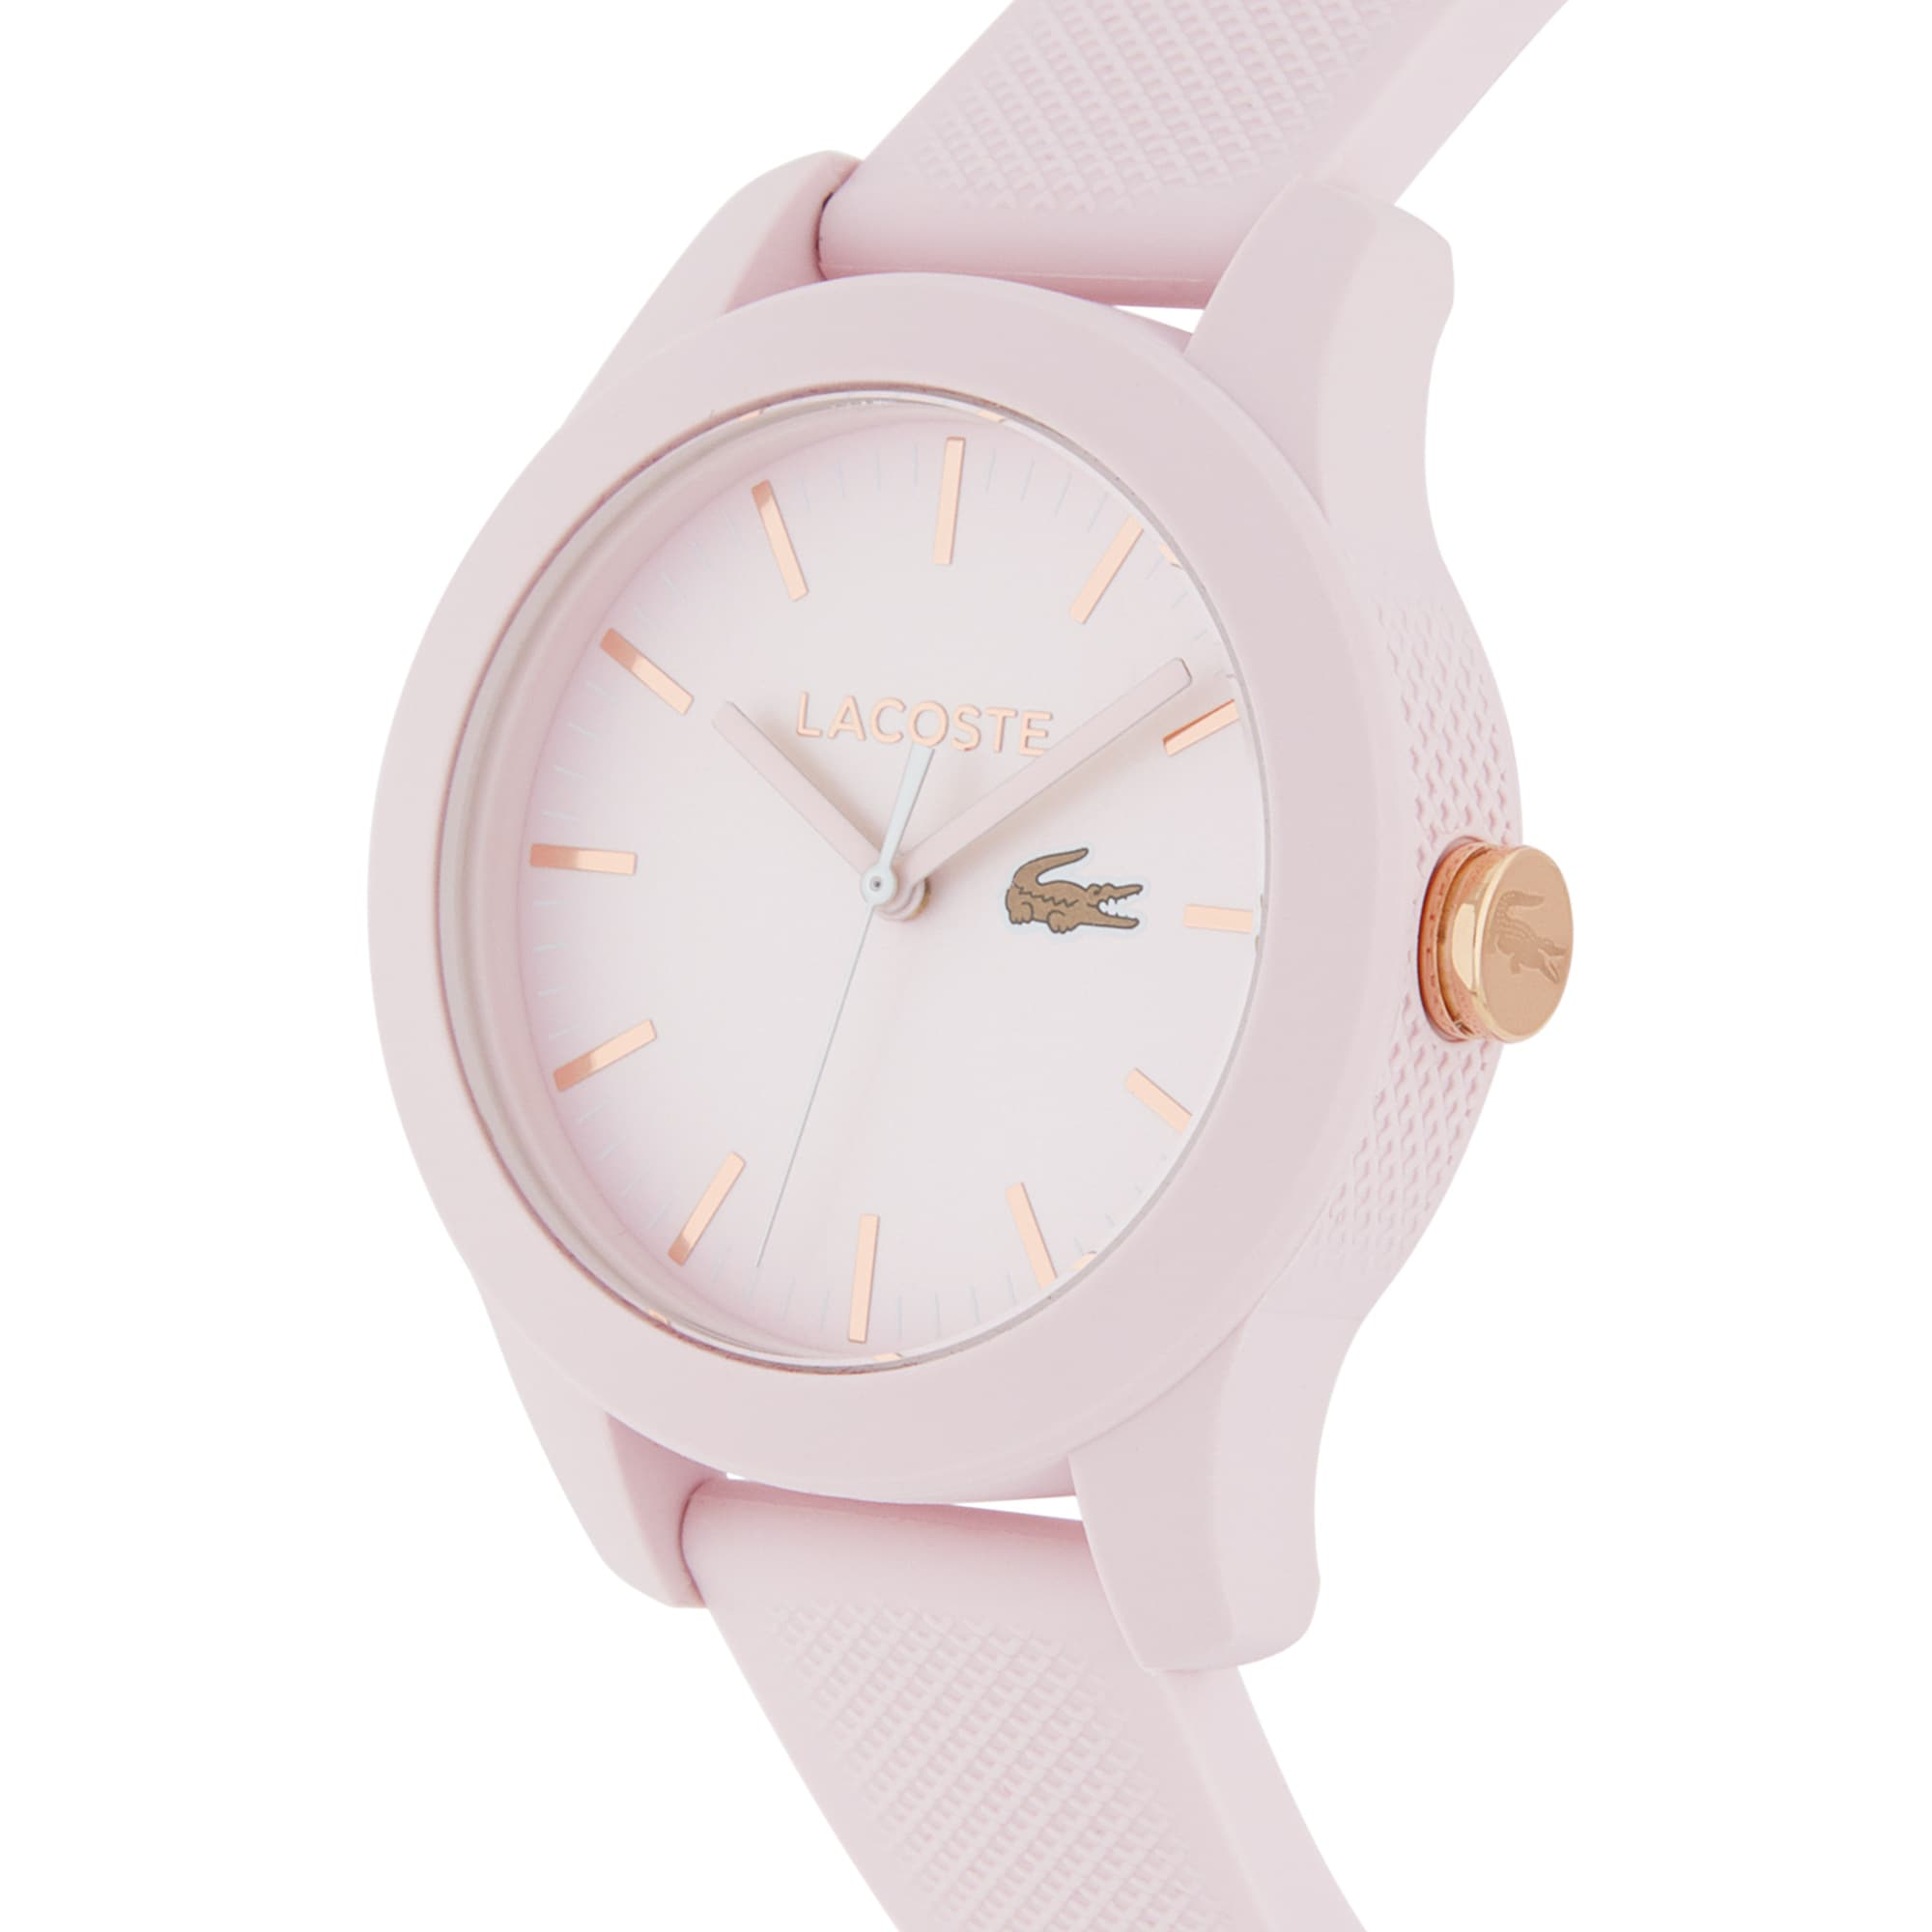 Women's Lacoste 12.12 Light Pink Silicon Strap